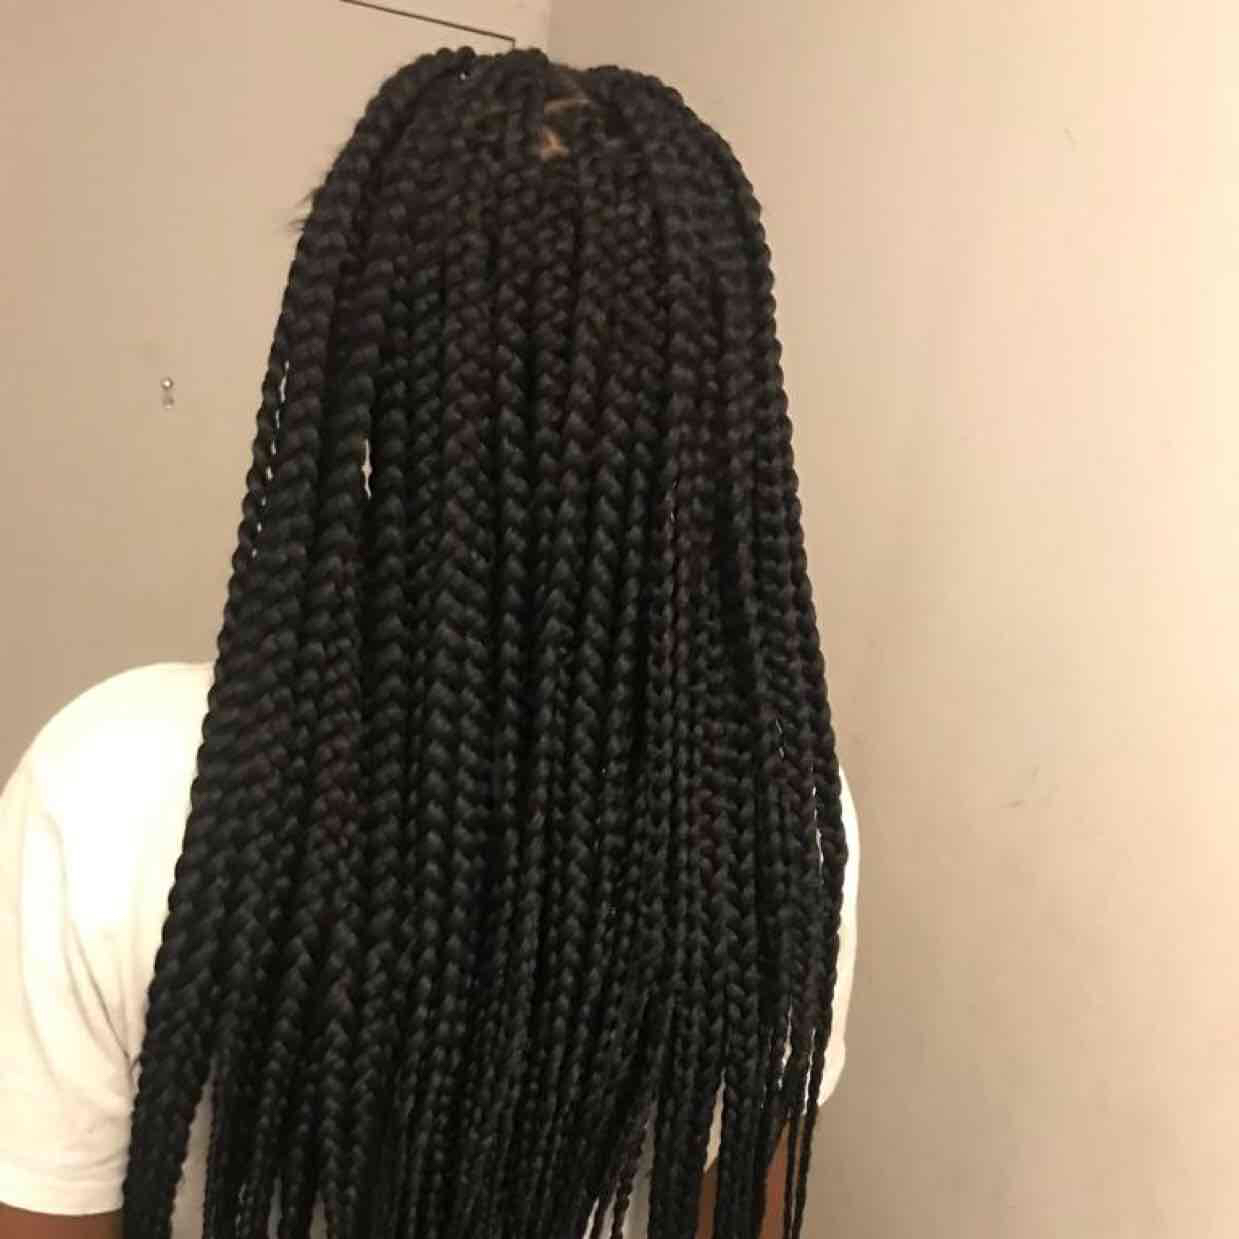 salon de coiffure afro tresse tresses box braids crochet braids vanilles tissages paris 75 77 78 91 92 93 94 95 CVBVZIJS